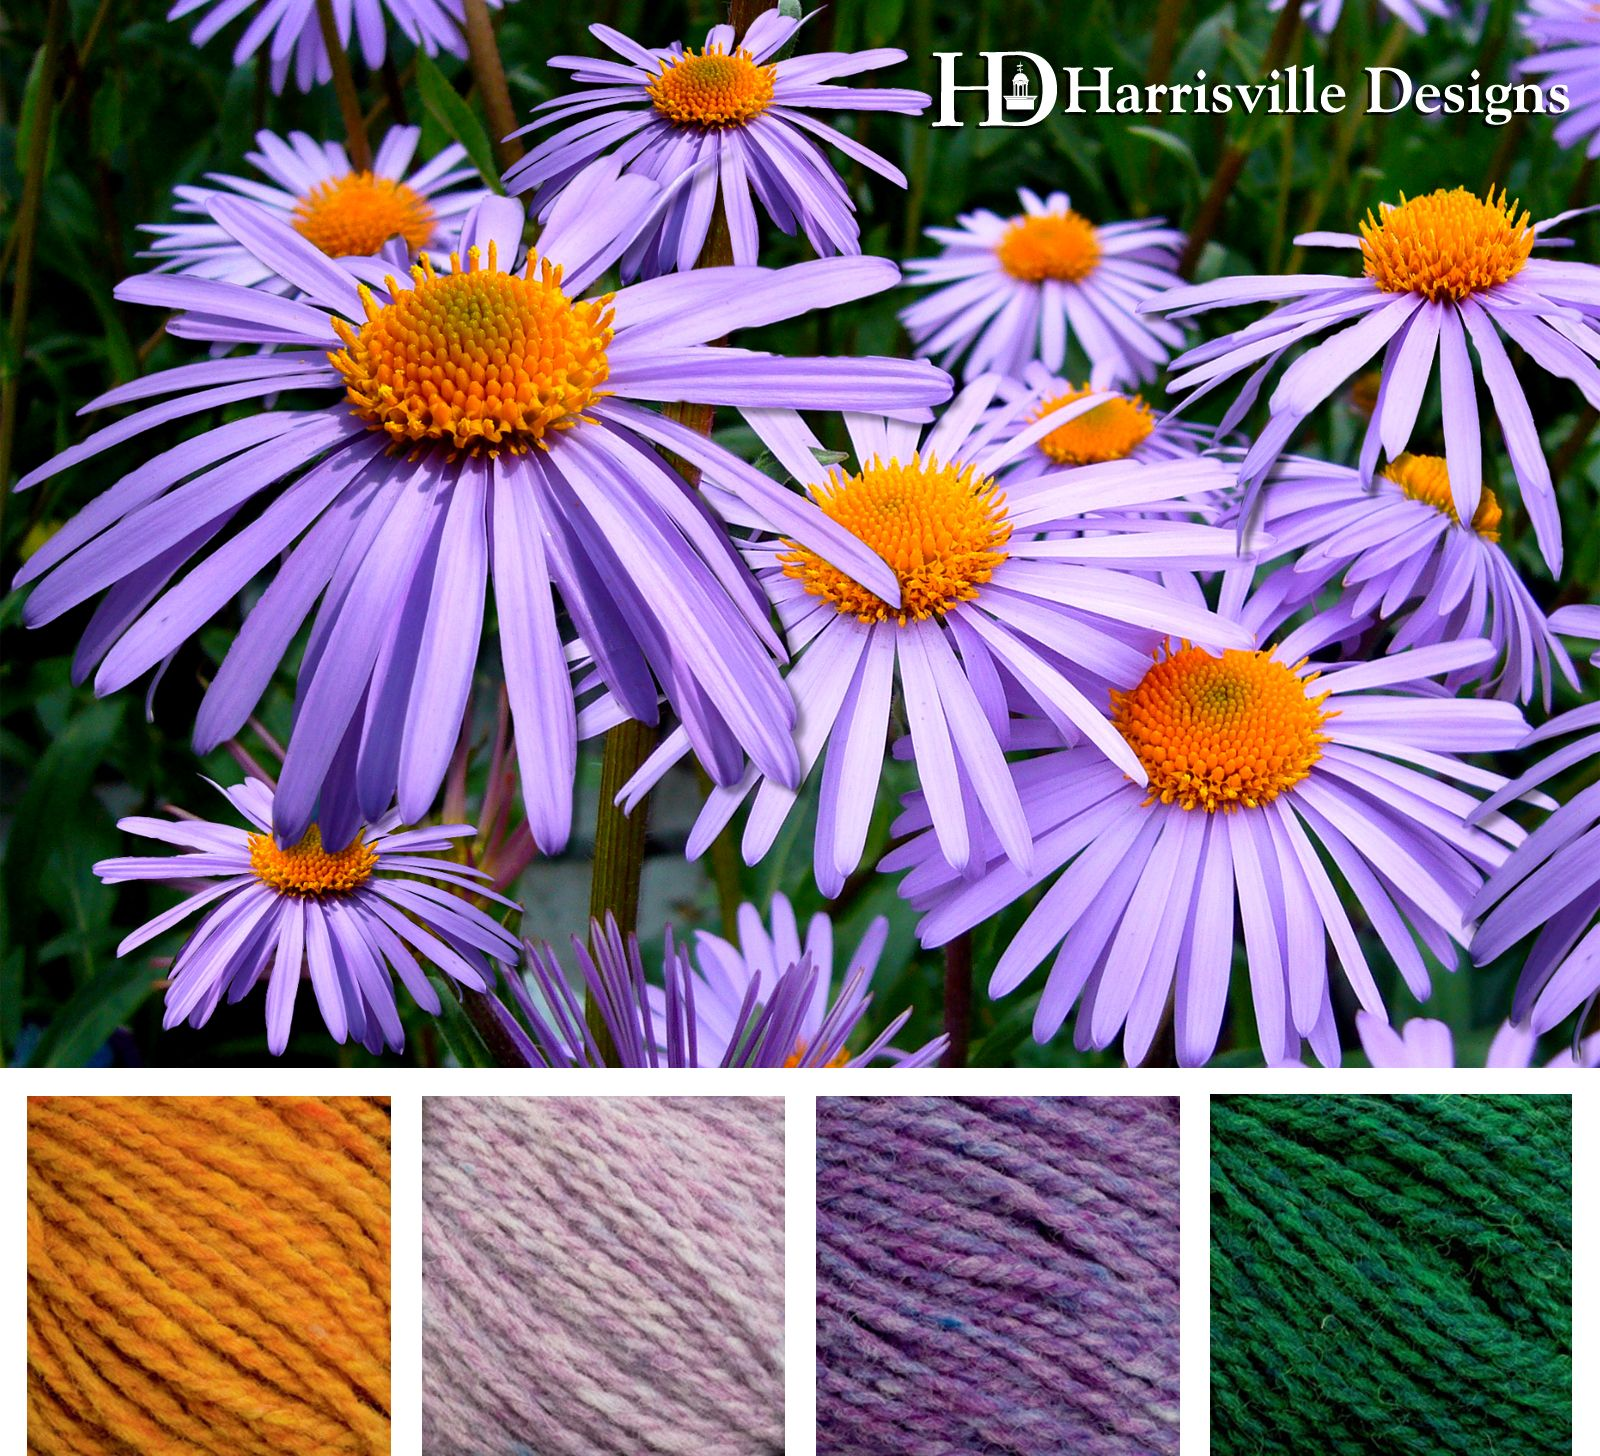 Color Scheme Inspiration From Purple Daisies Uses Shetland Yarn Gold Lilac Periwinkle And Spruce 꽃 색깔 식물